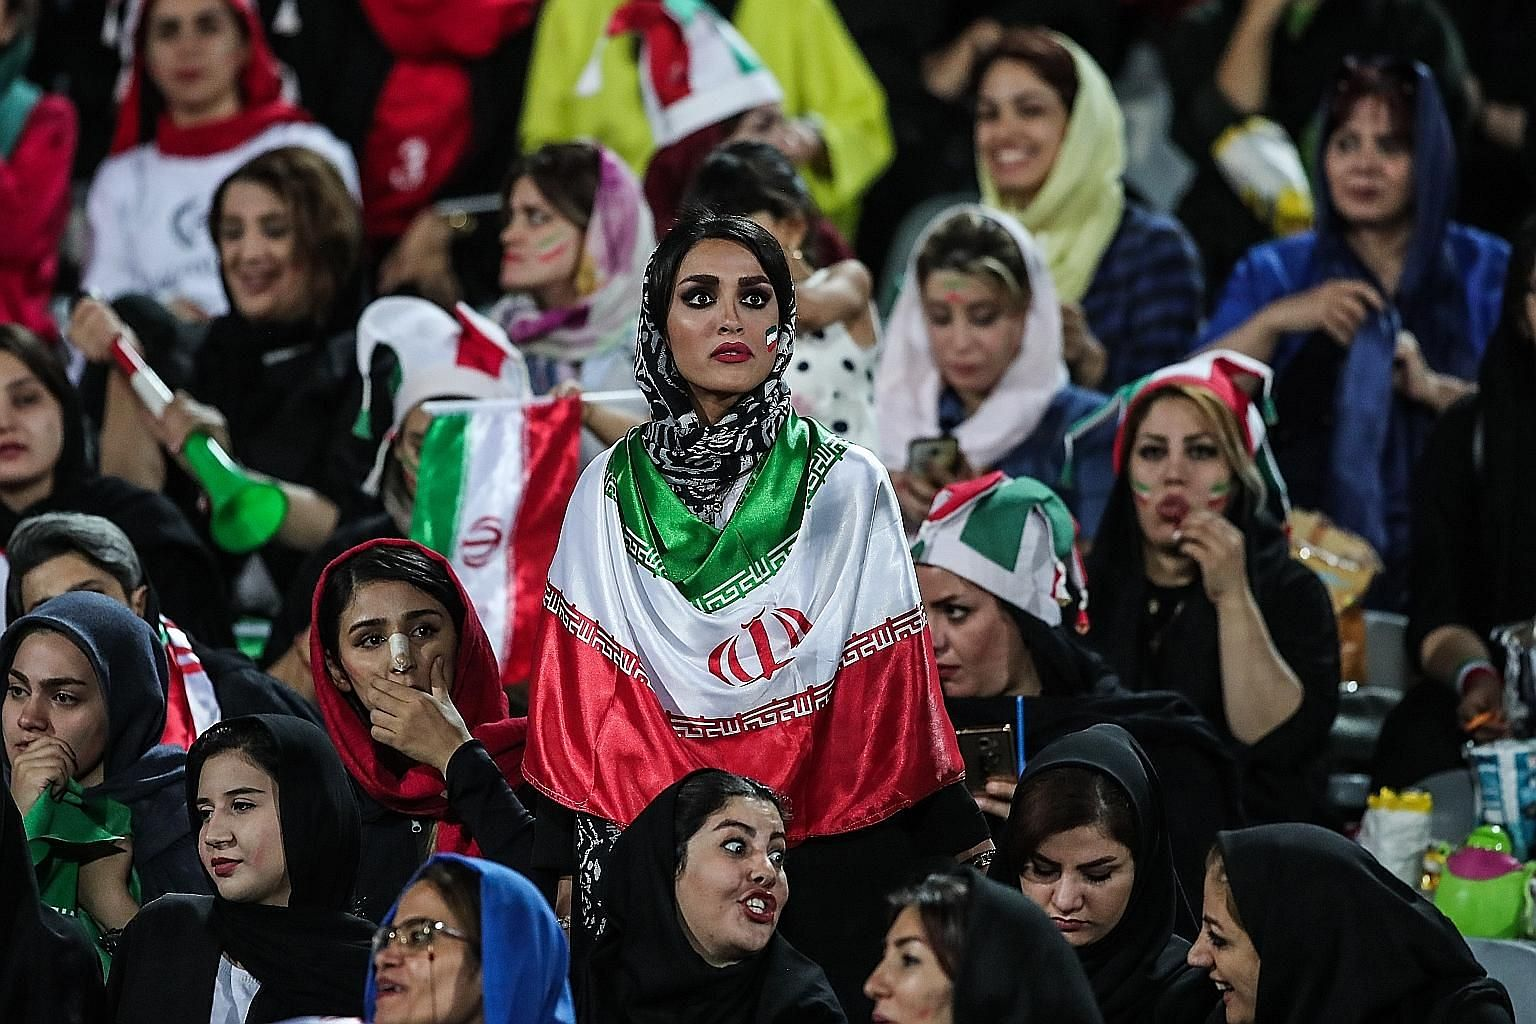 Iranian women attending the World Cup 2022 qualifier between Iran and Cambodia at the Azadi Stadium in Teheran on Oct 10. For the first time since the 1979 Islamic Revolution, women were allowed to attend a football match.